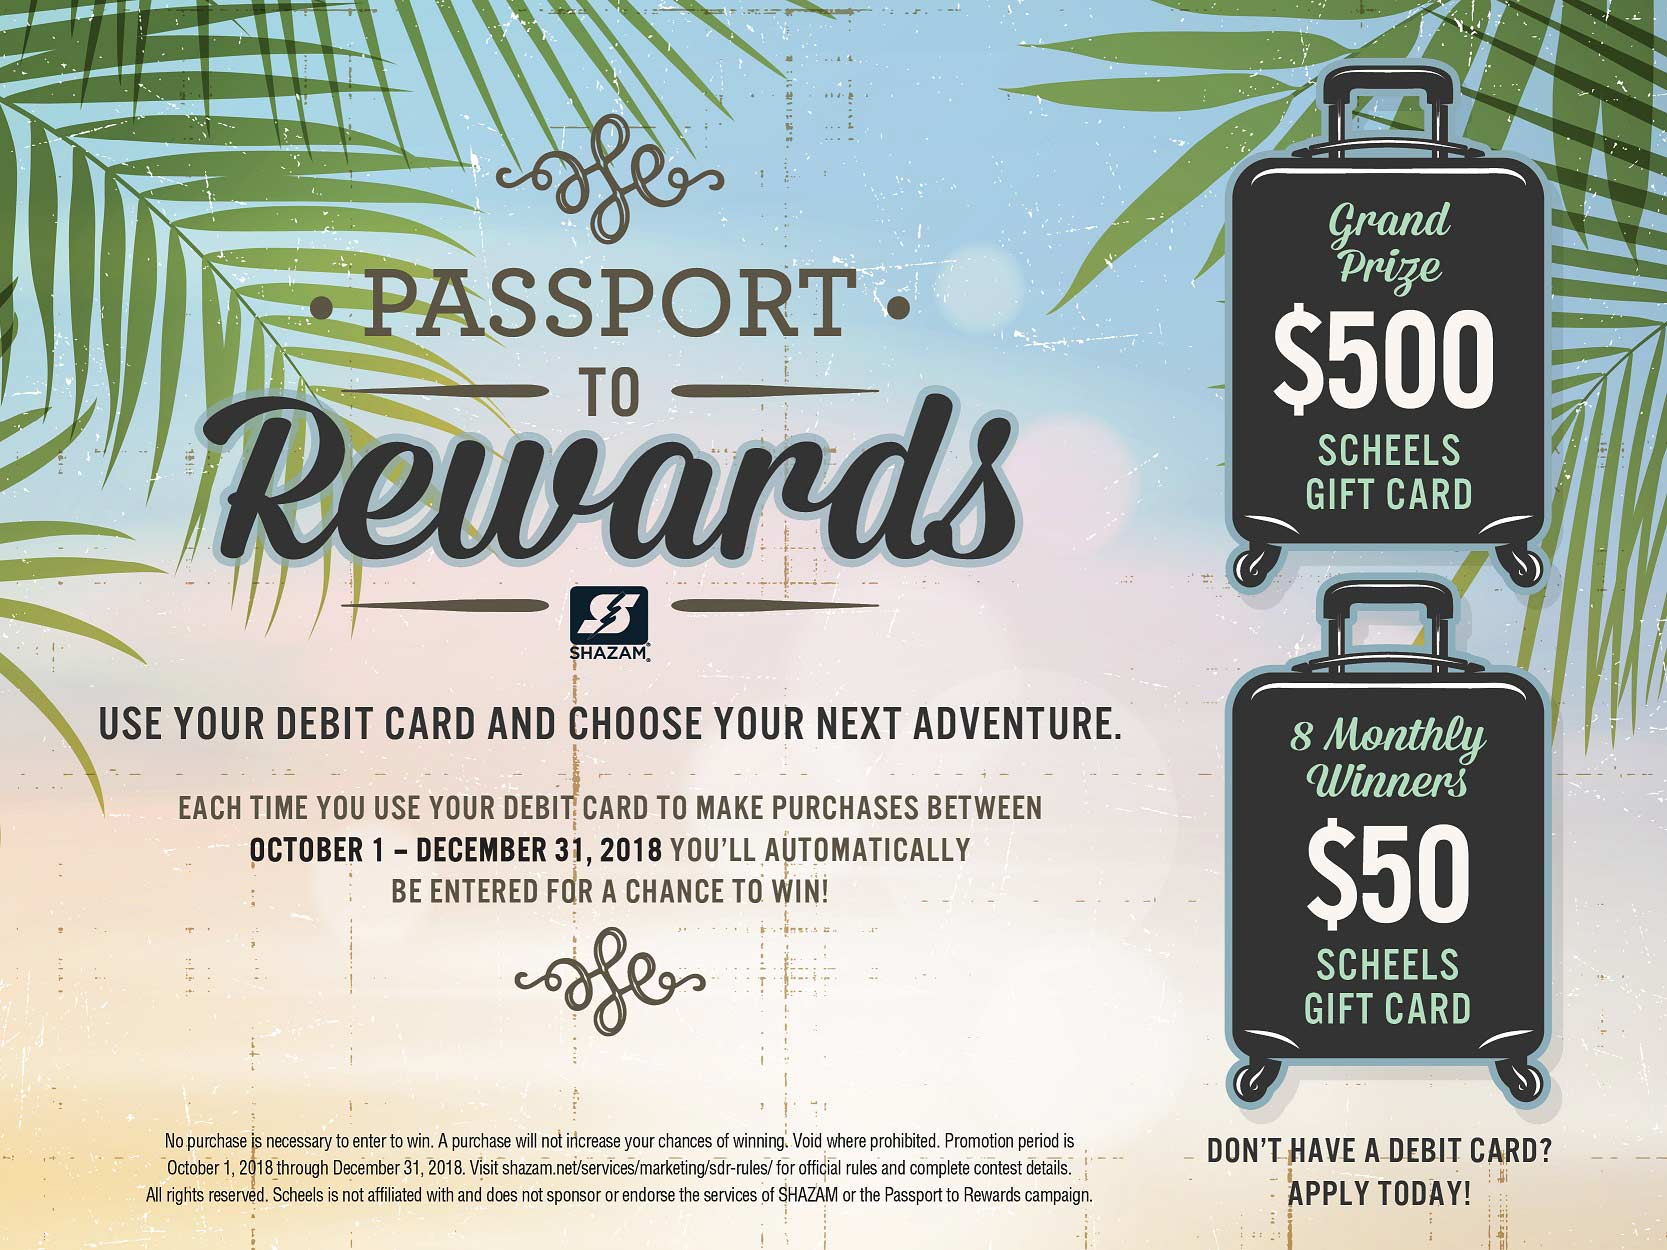 Shazam Passport to Rewards. Use your debit card and choose your next adventure. Each time you use your debit card to make purchases between October 1 and December 31, 2018, you'll automatically be entered for a chance to win! Grand prize $500 Scheels gift card. 8 Monthly winners $50 Scheels gift card.